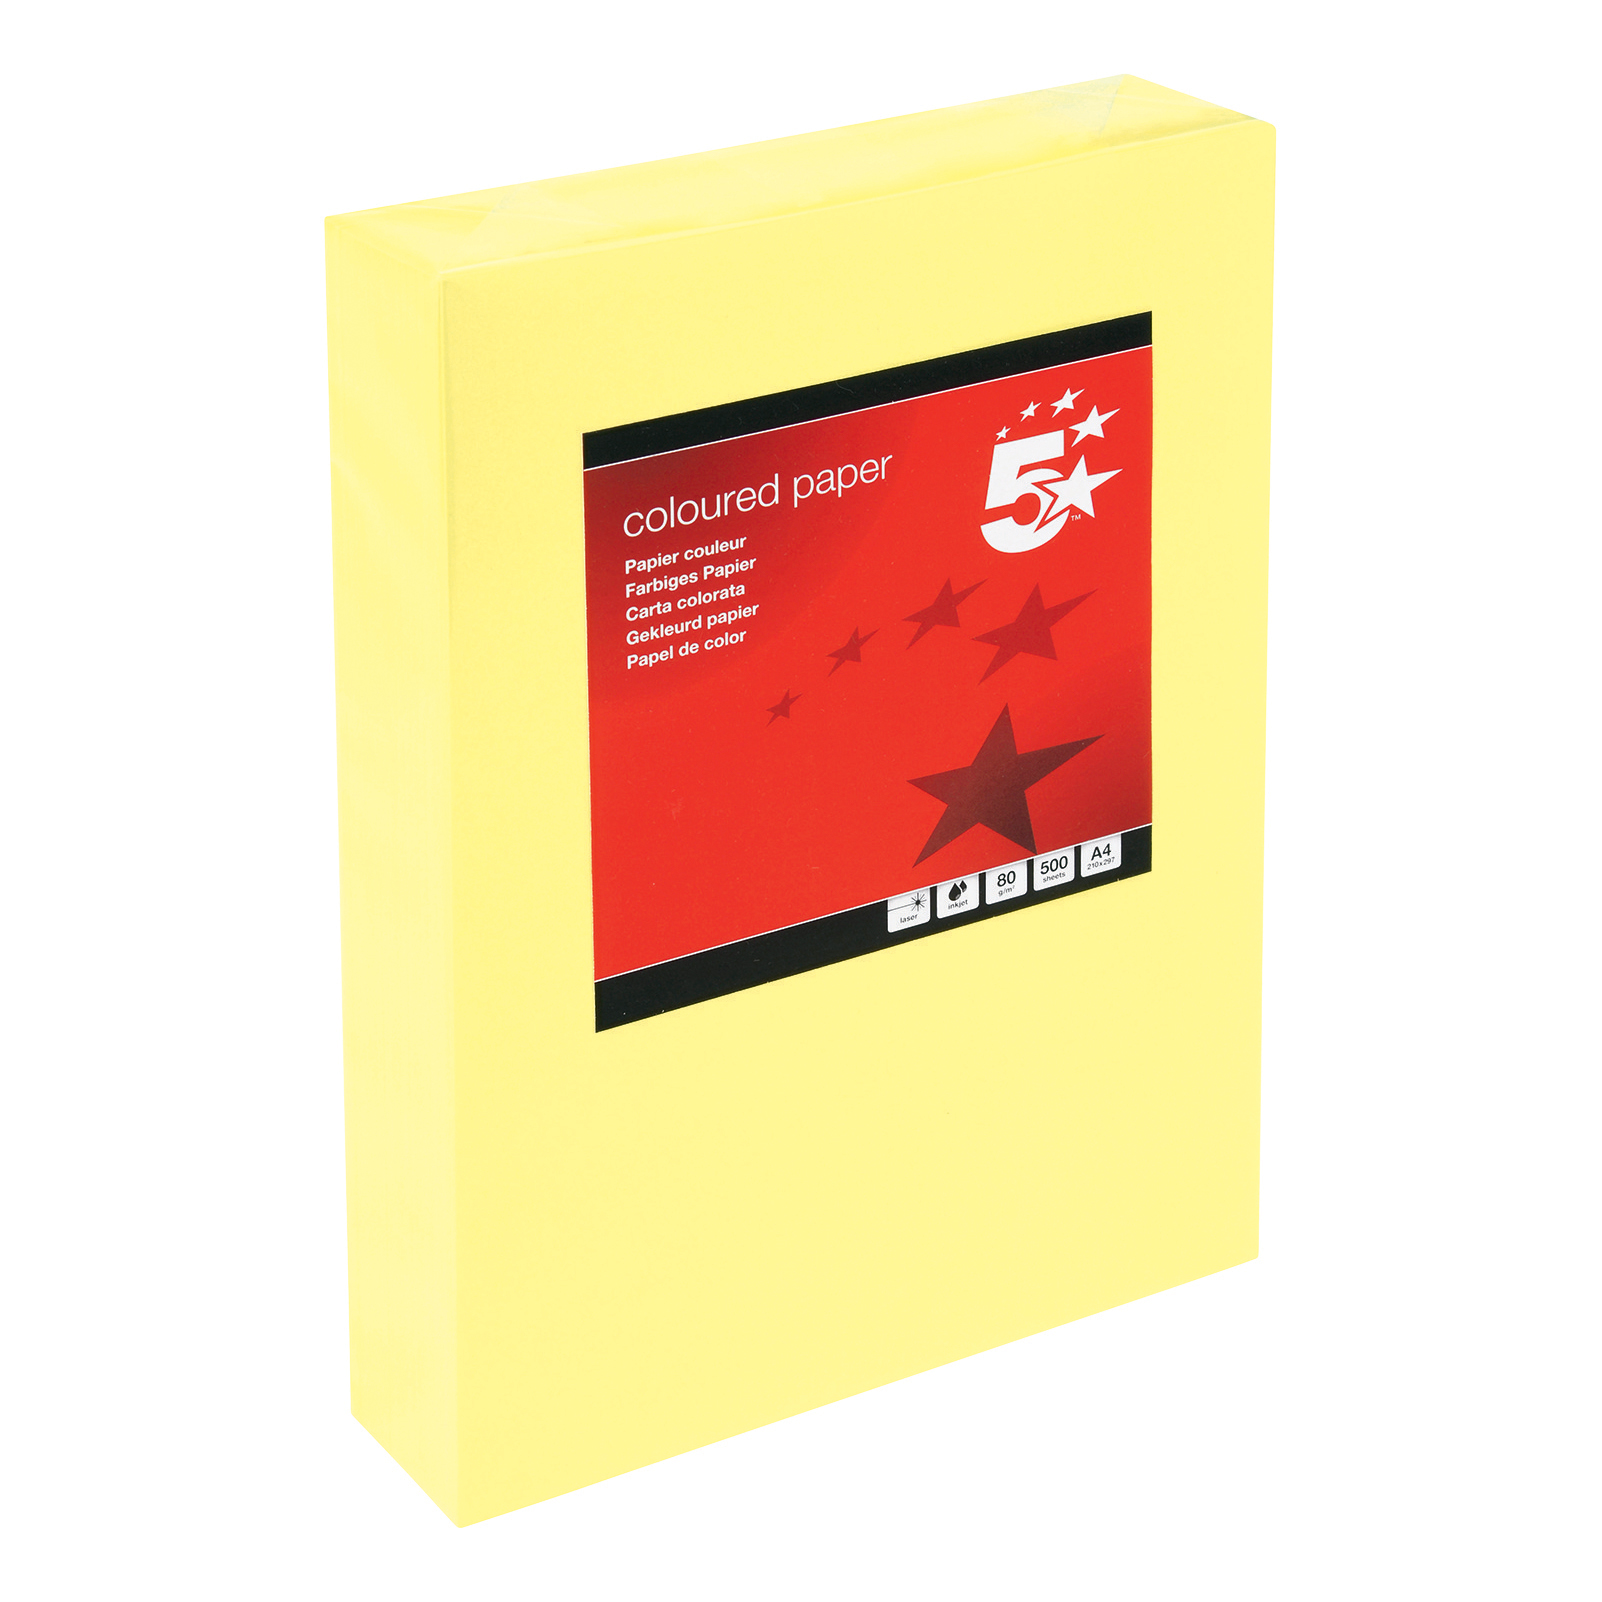 5 Star Office Coloured Copier Paper Multifunctional Ream-Wrapped 80gsm A4 Medium Yellow [500 Sheets]